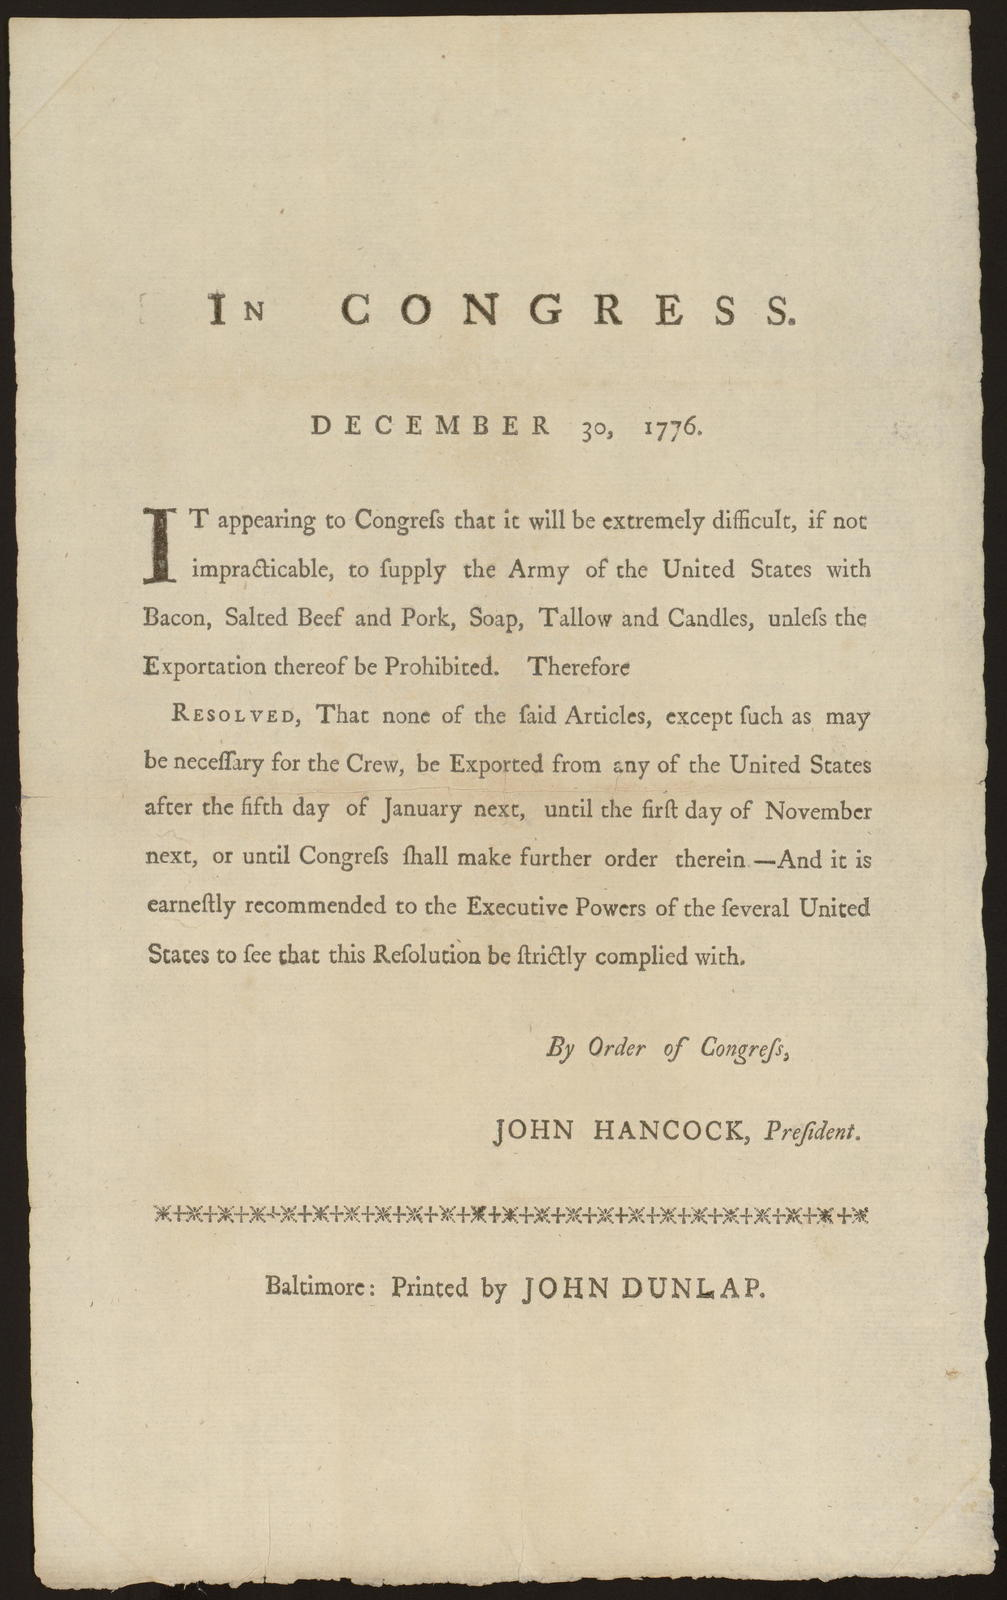 In Congress. December 30, 1776 : It appearing to Congress that it will be extremely difficult, if not impracticable, to supply the Army of the United States with bacon, salted beef and pork, soap, tallow and candles ... Resolved, that none of the said articles ... be exported from any of the United States after the fifth day of January next, until the first day of November next ...